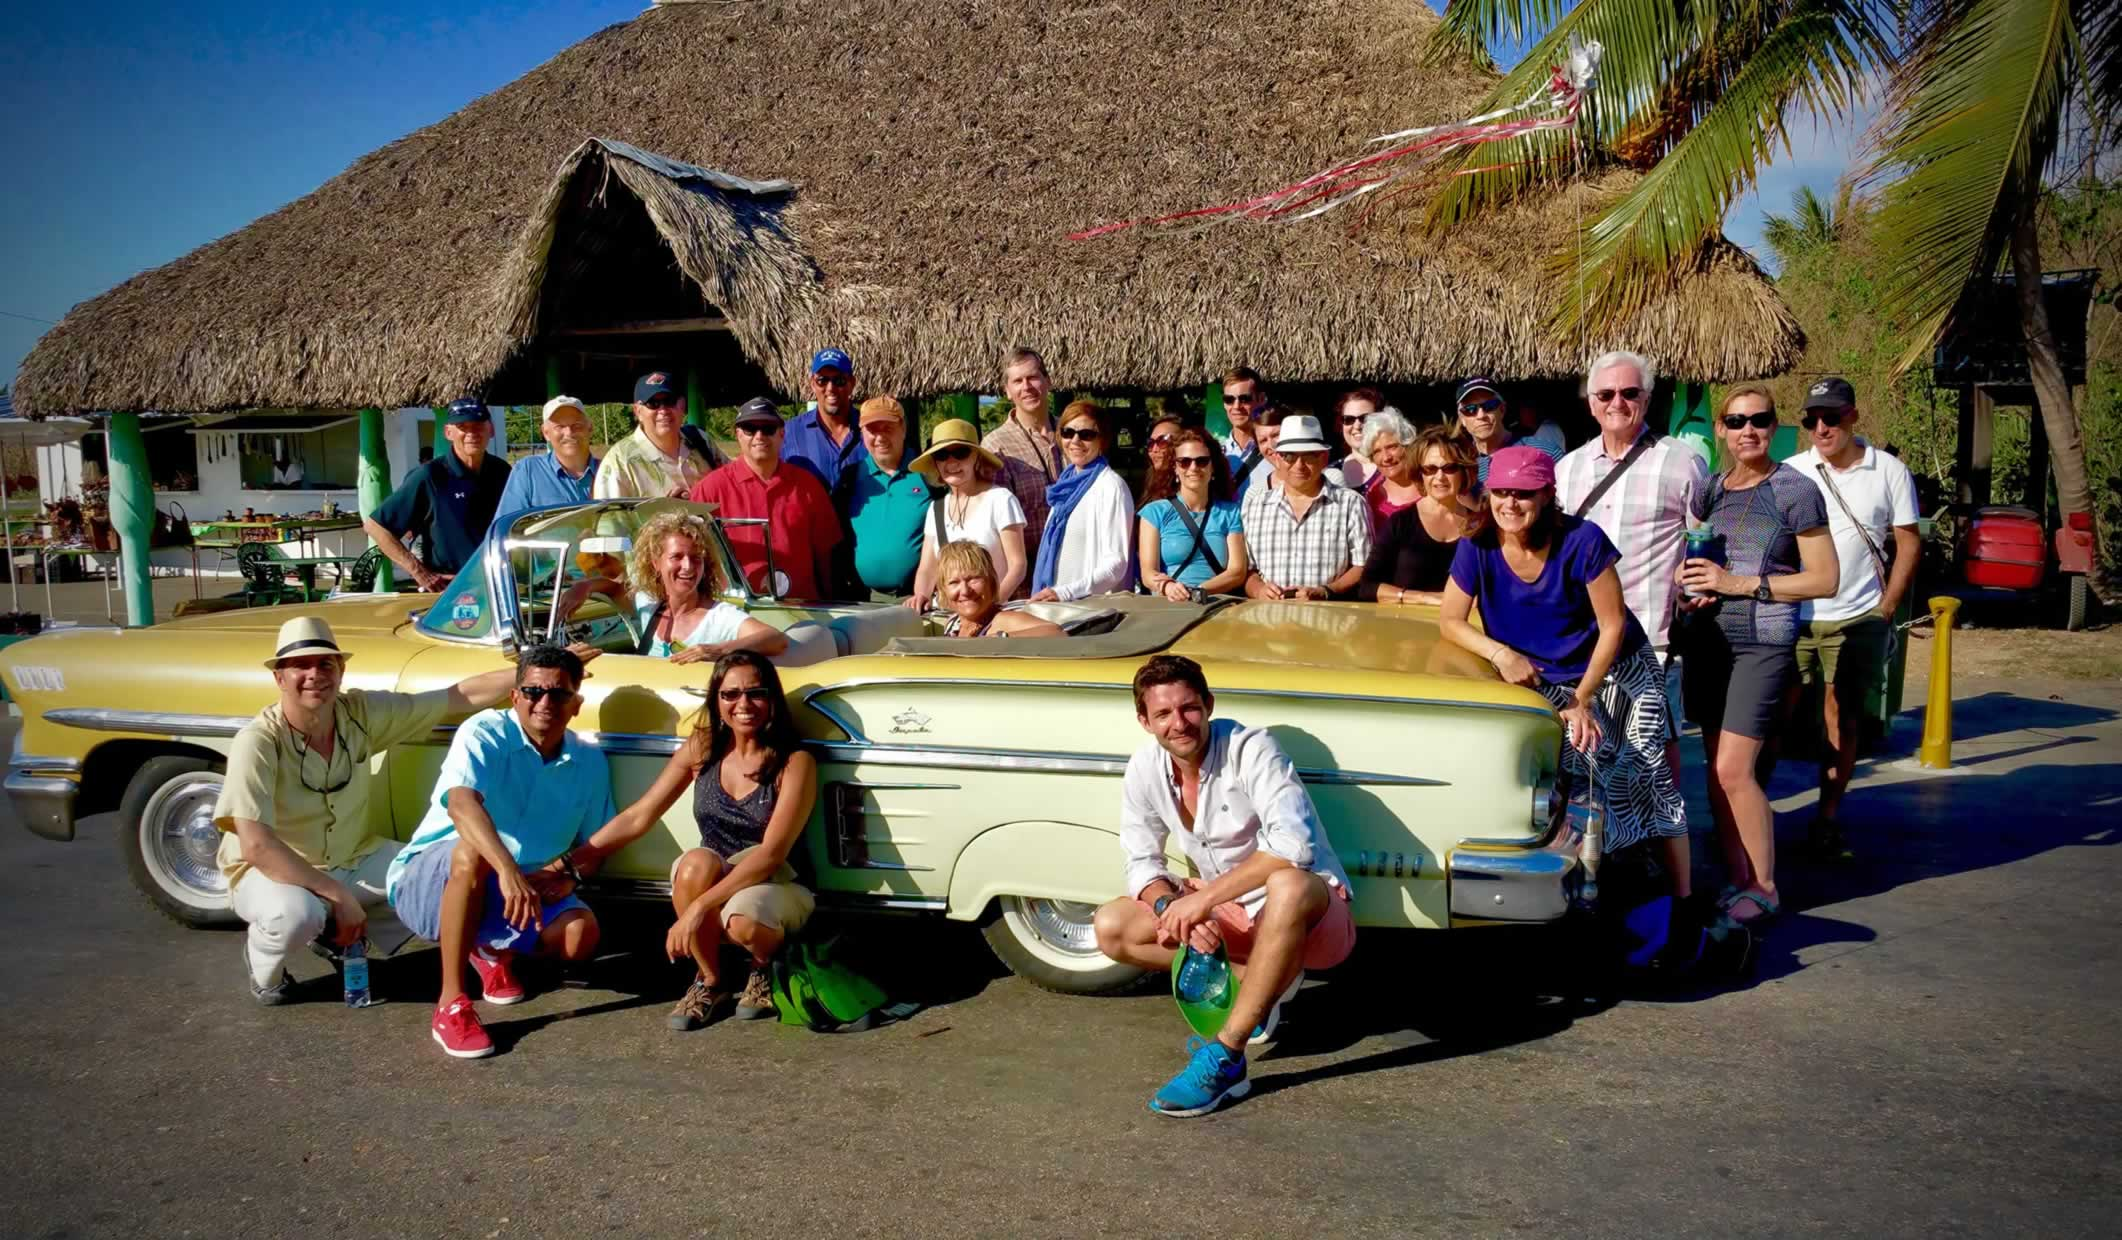 Group of UBELONGers in Cuba, with Co-founder Cedric Hodgeman on bottom right